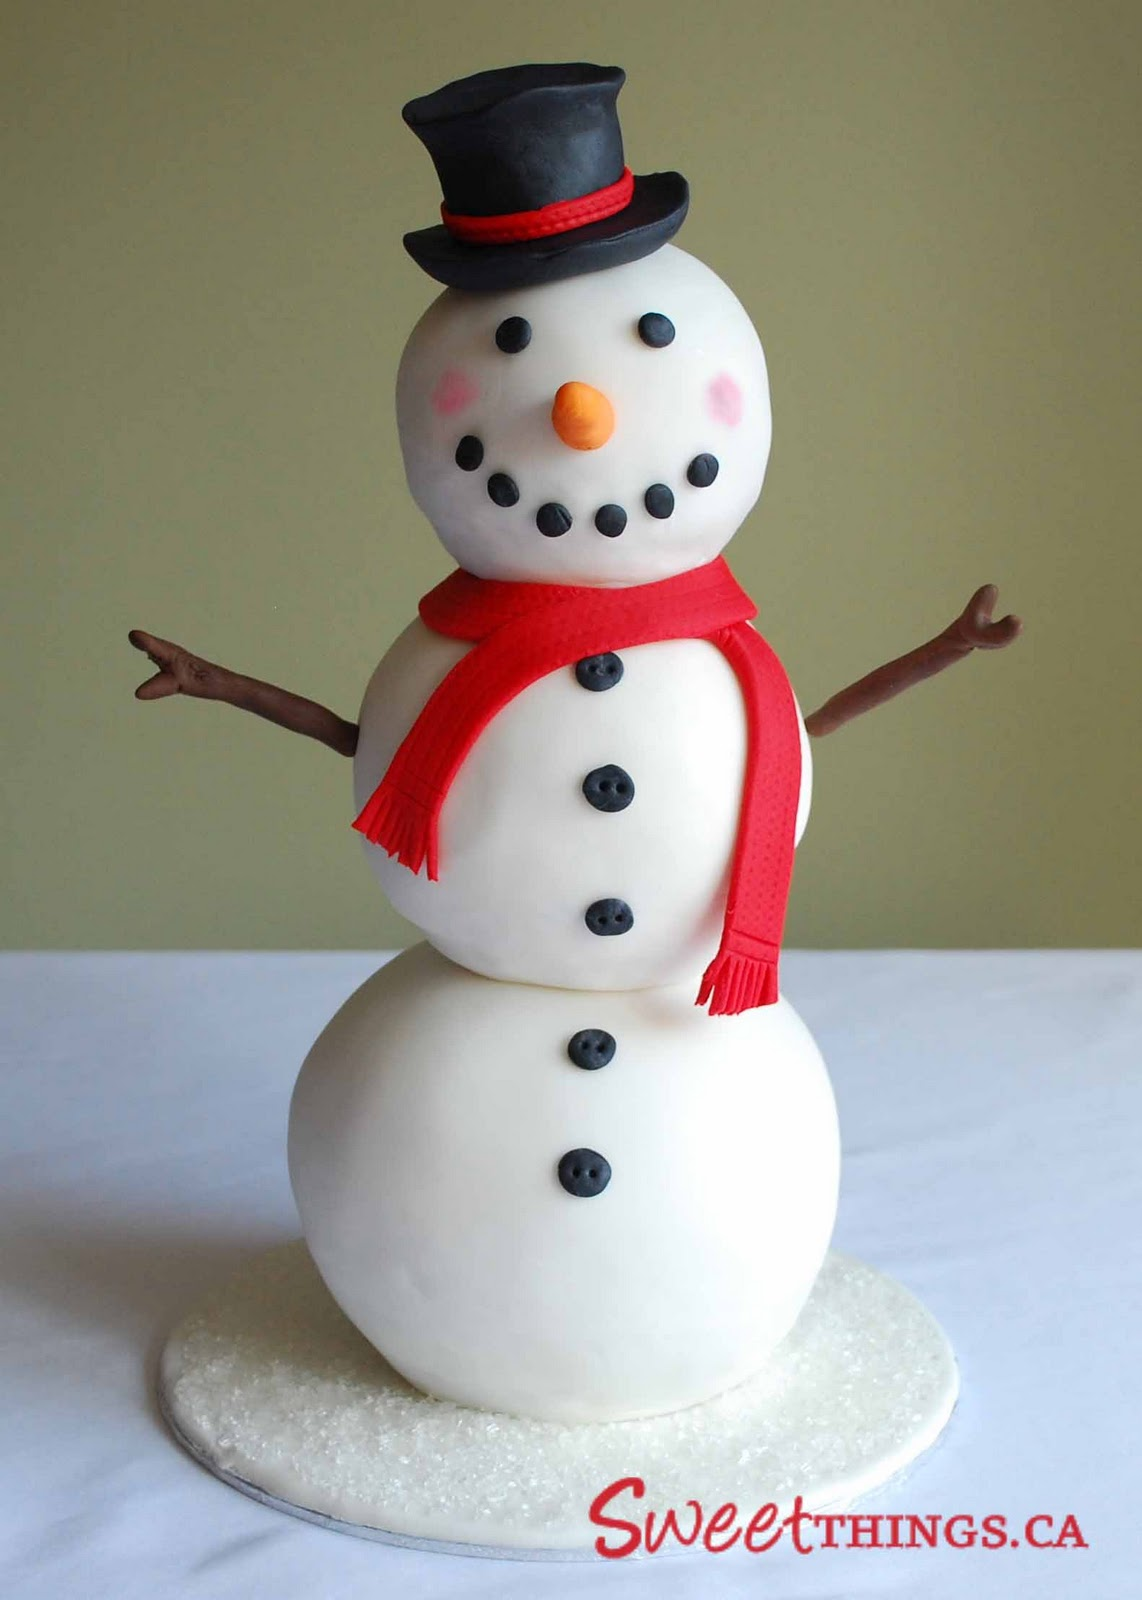 Sweetthings Snowman Cake